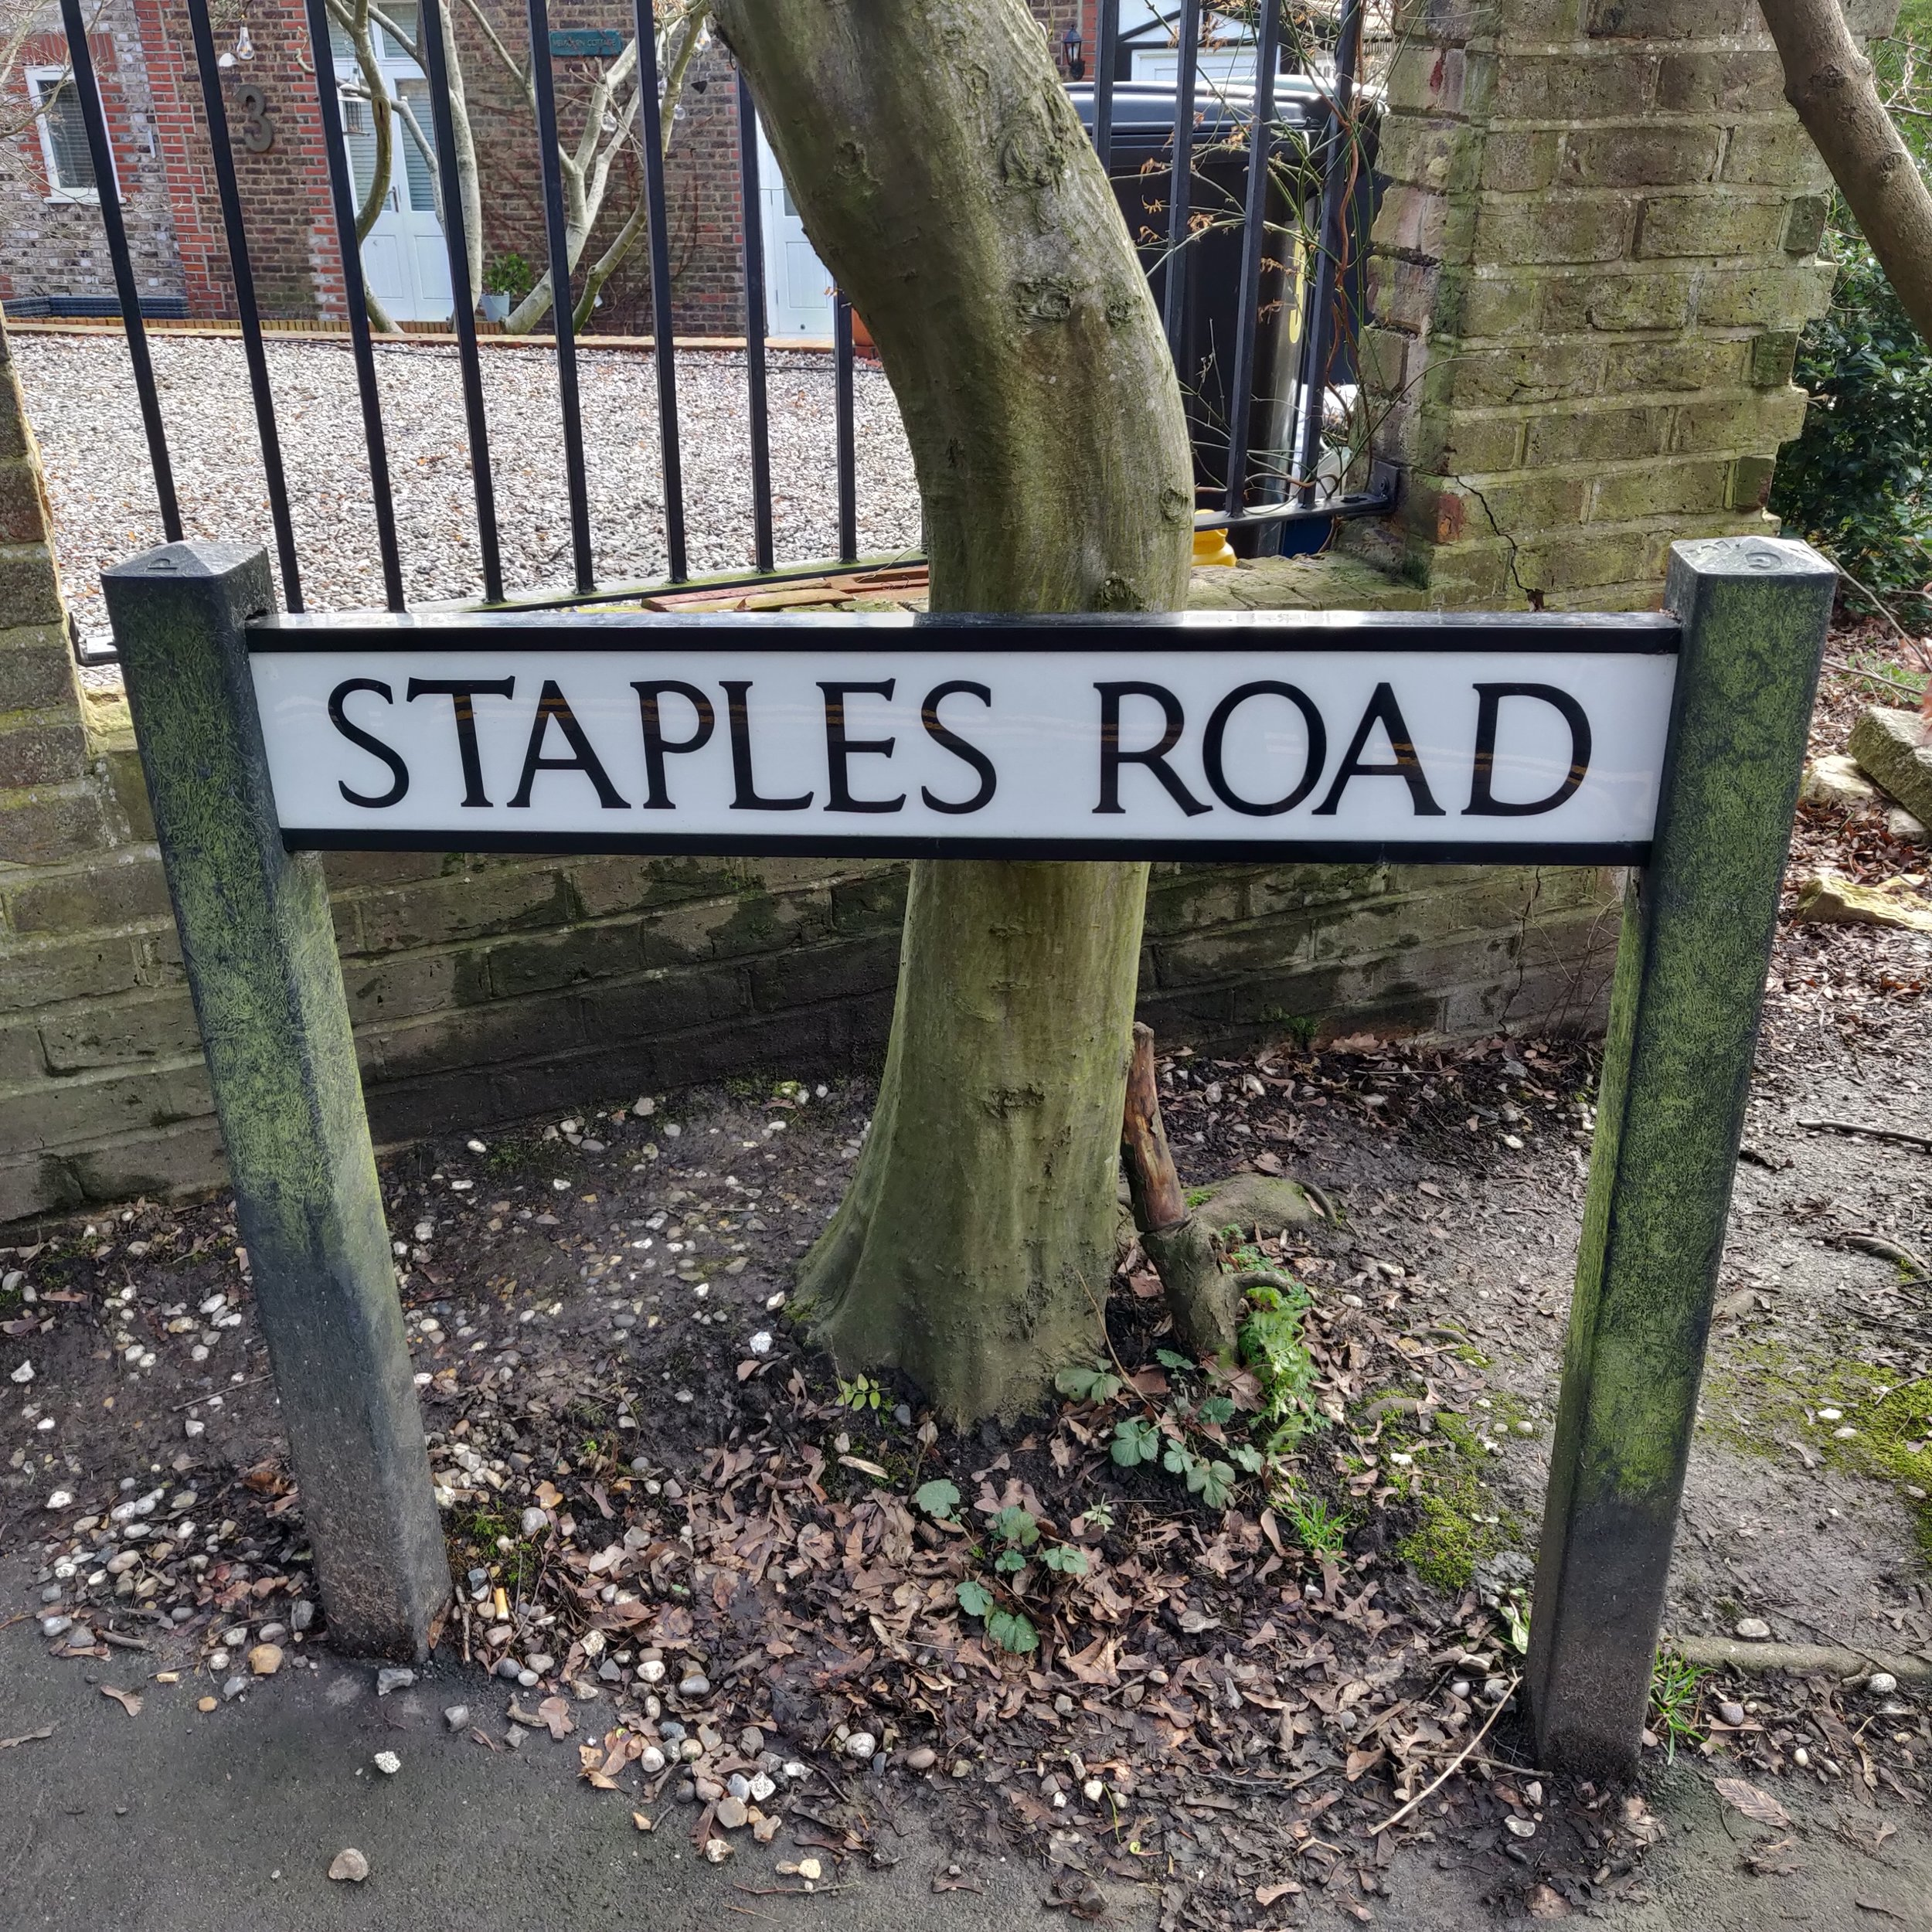 Staples Road, Loughton